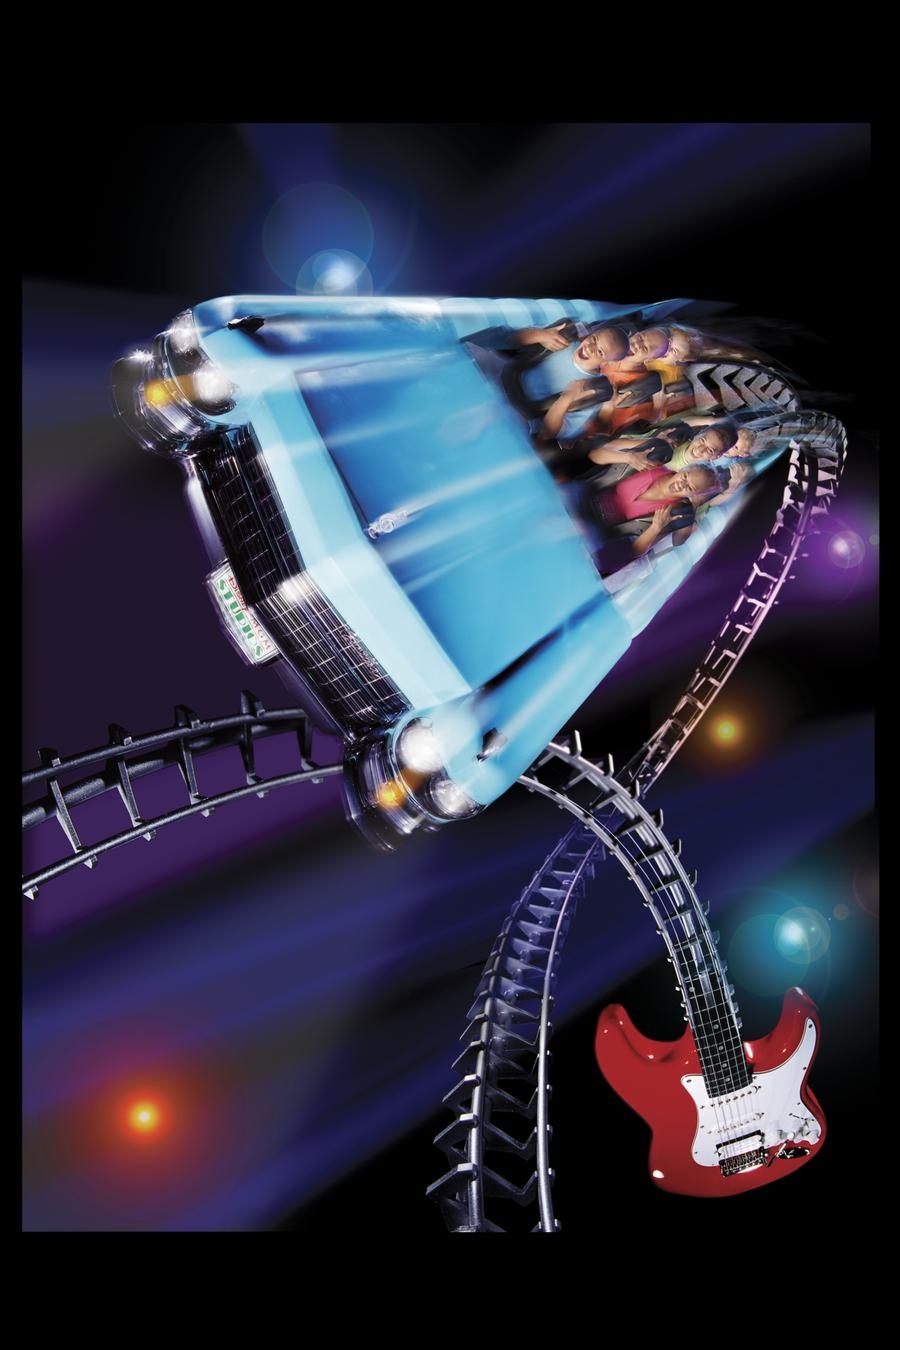 Rock'n' roller coaster Disney World